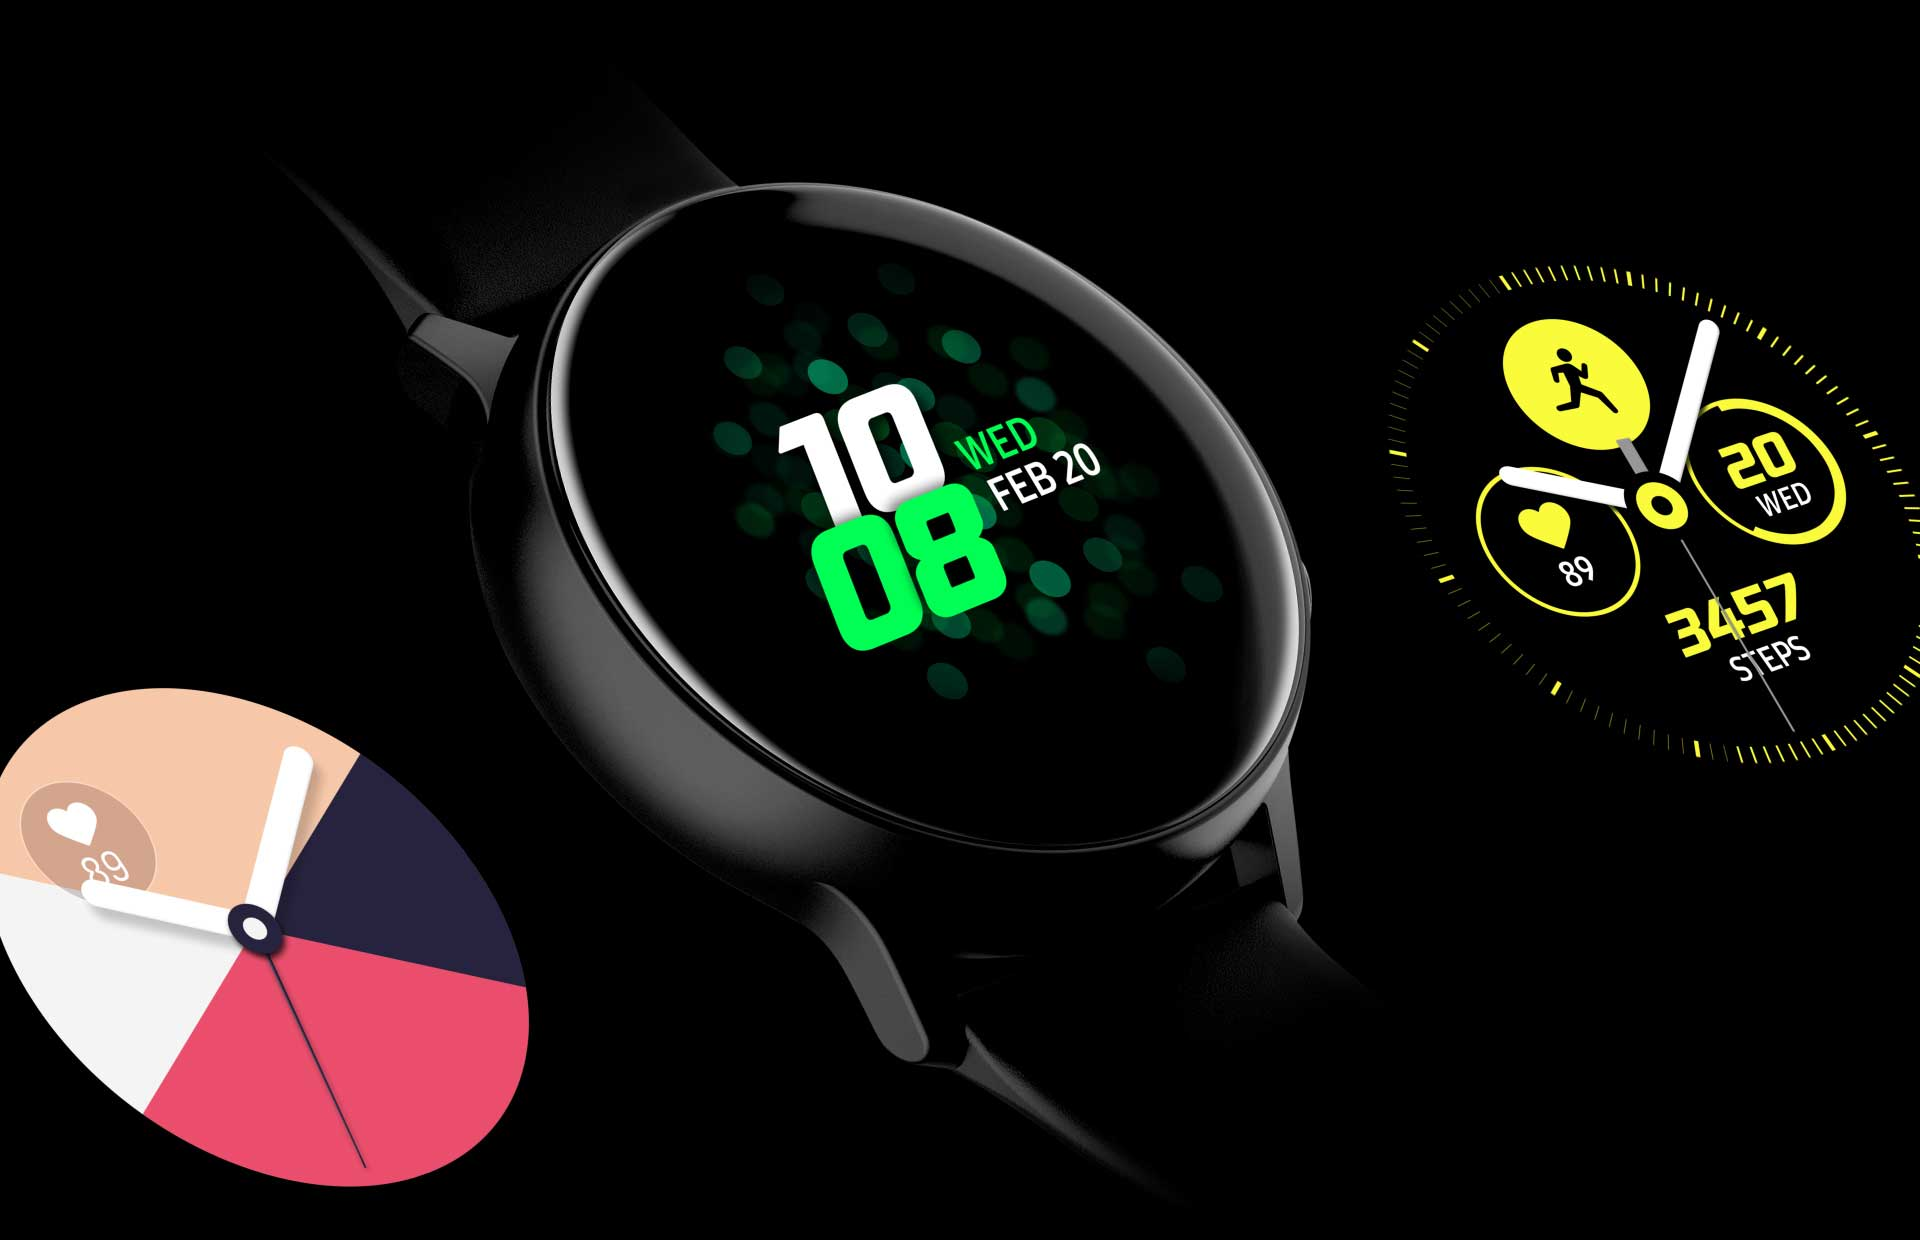 Samsung Galaxy Watch Active Wallpapers Wallpaper Cave